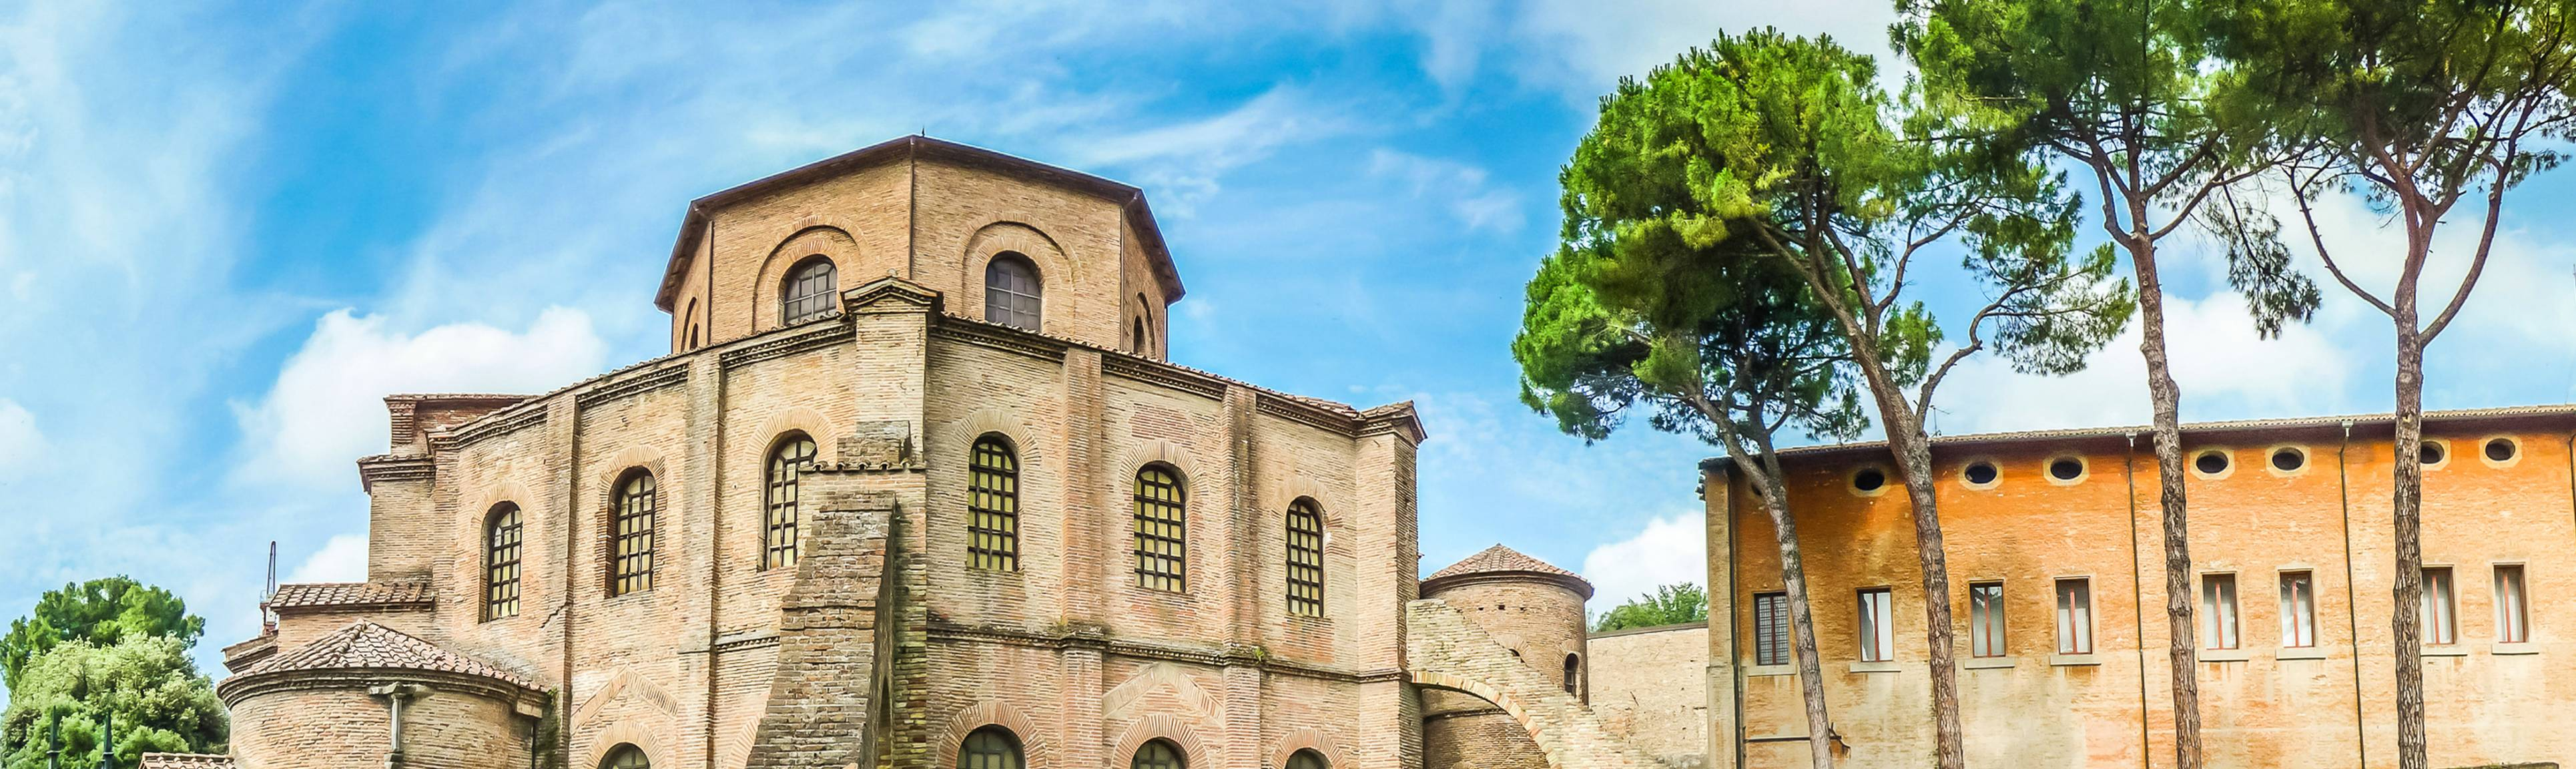 View of facade of 6th century Basilica San Vitale in Ravenna, Italy